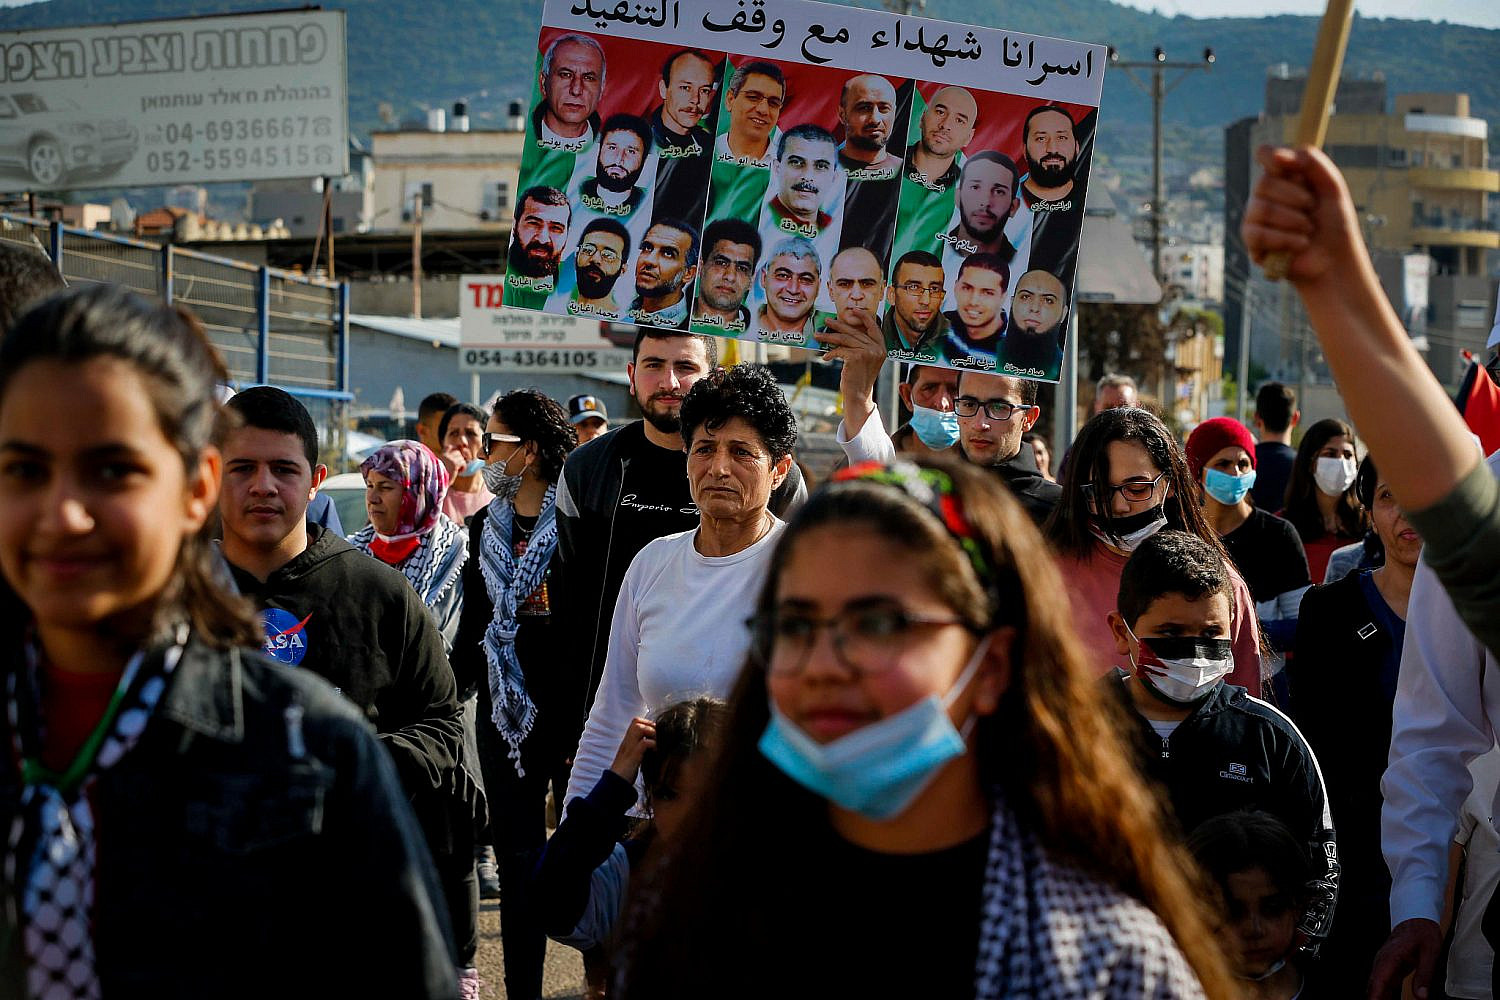 Palestinian citizens march during a protest marking Land Day, the annual event commemorating the Israeli police killings of six protesters during mass protests in 1976 against plans to confiscate Arab land, in Arrabe, northern Israel, March 30, 2021. (Jamal Awad/Flash90)